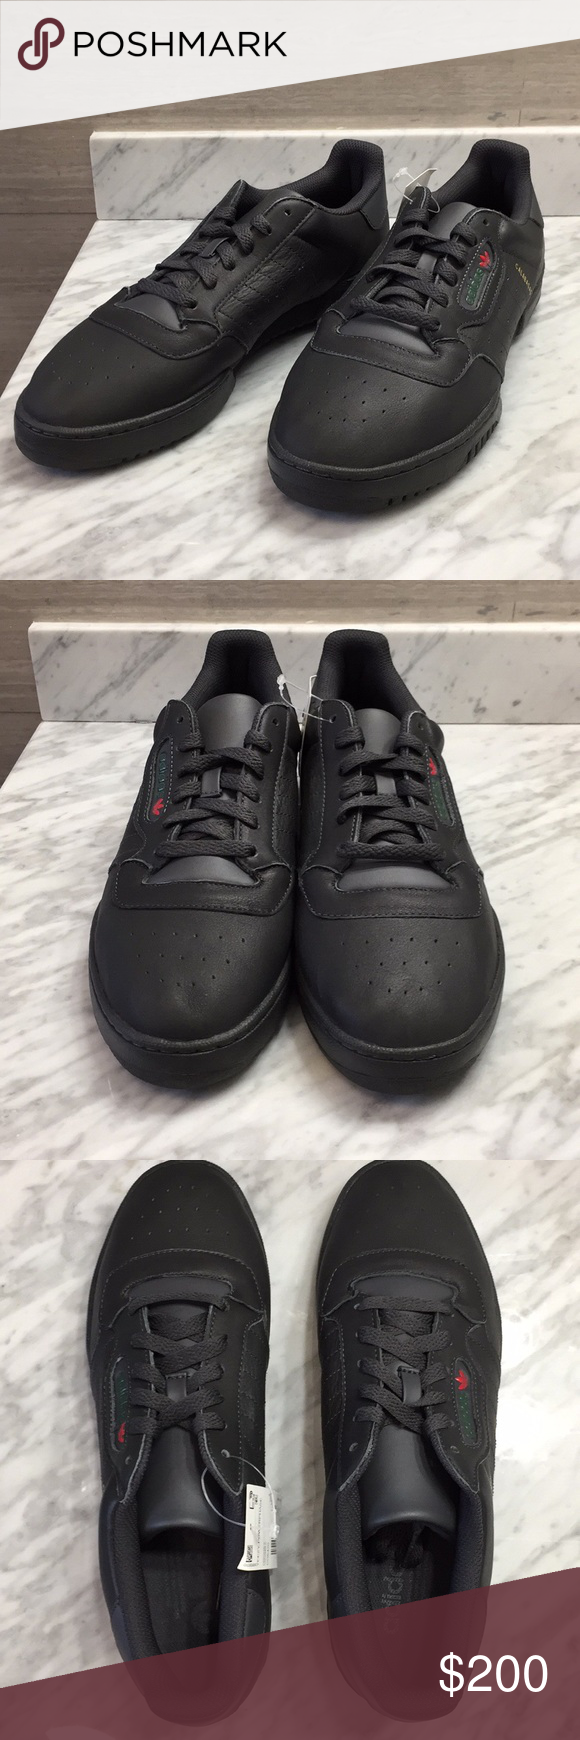 2a7195c14 Adidas Yeezy Powerphase Calabasas Size 9.5 Black Adidas Yeezy Powerphase  Calabasas Core Black Core Black Core Black. Style Code  CG6420.